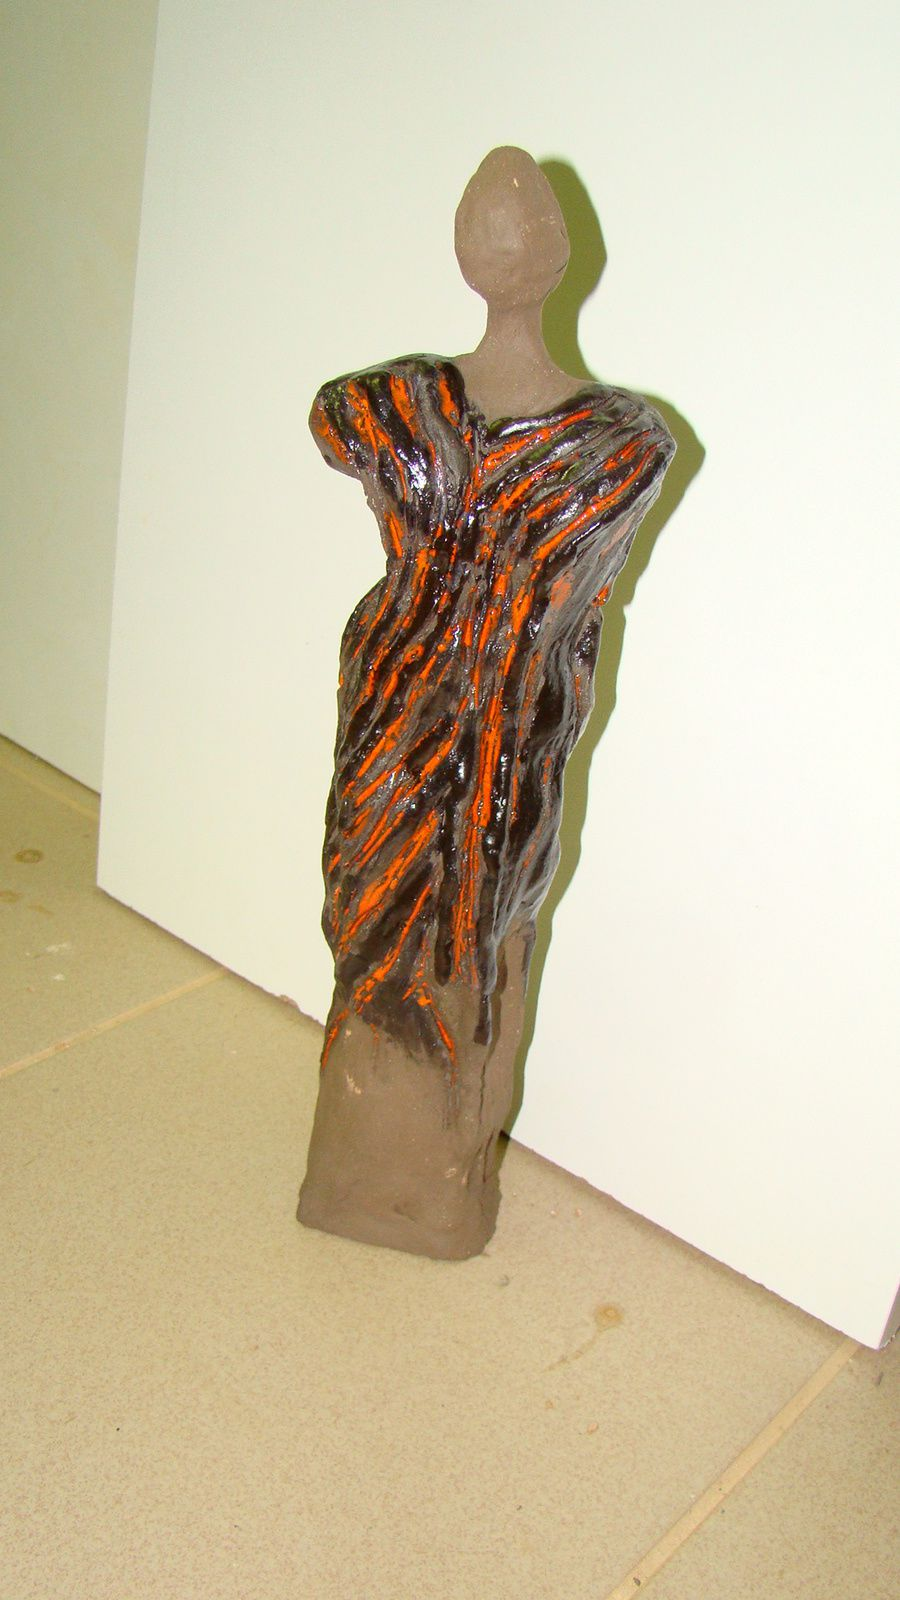 Sculpture de Martine P